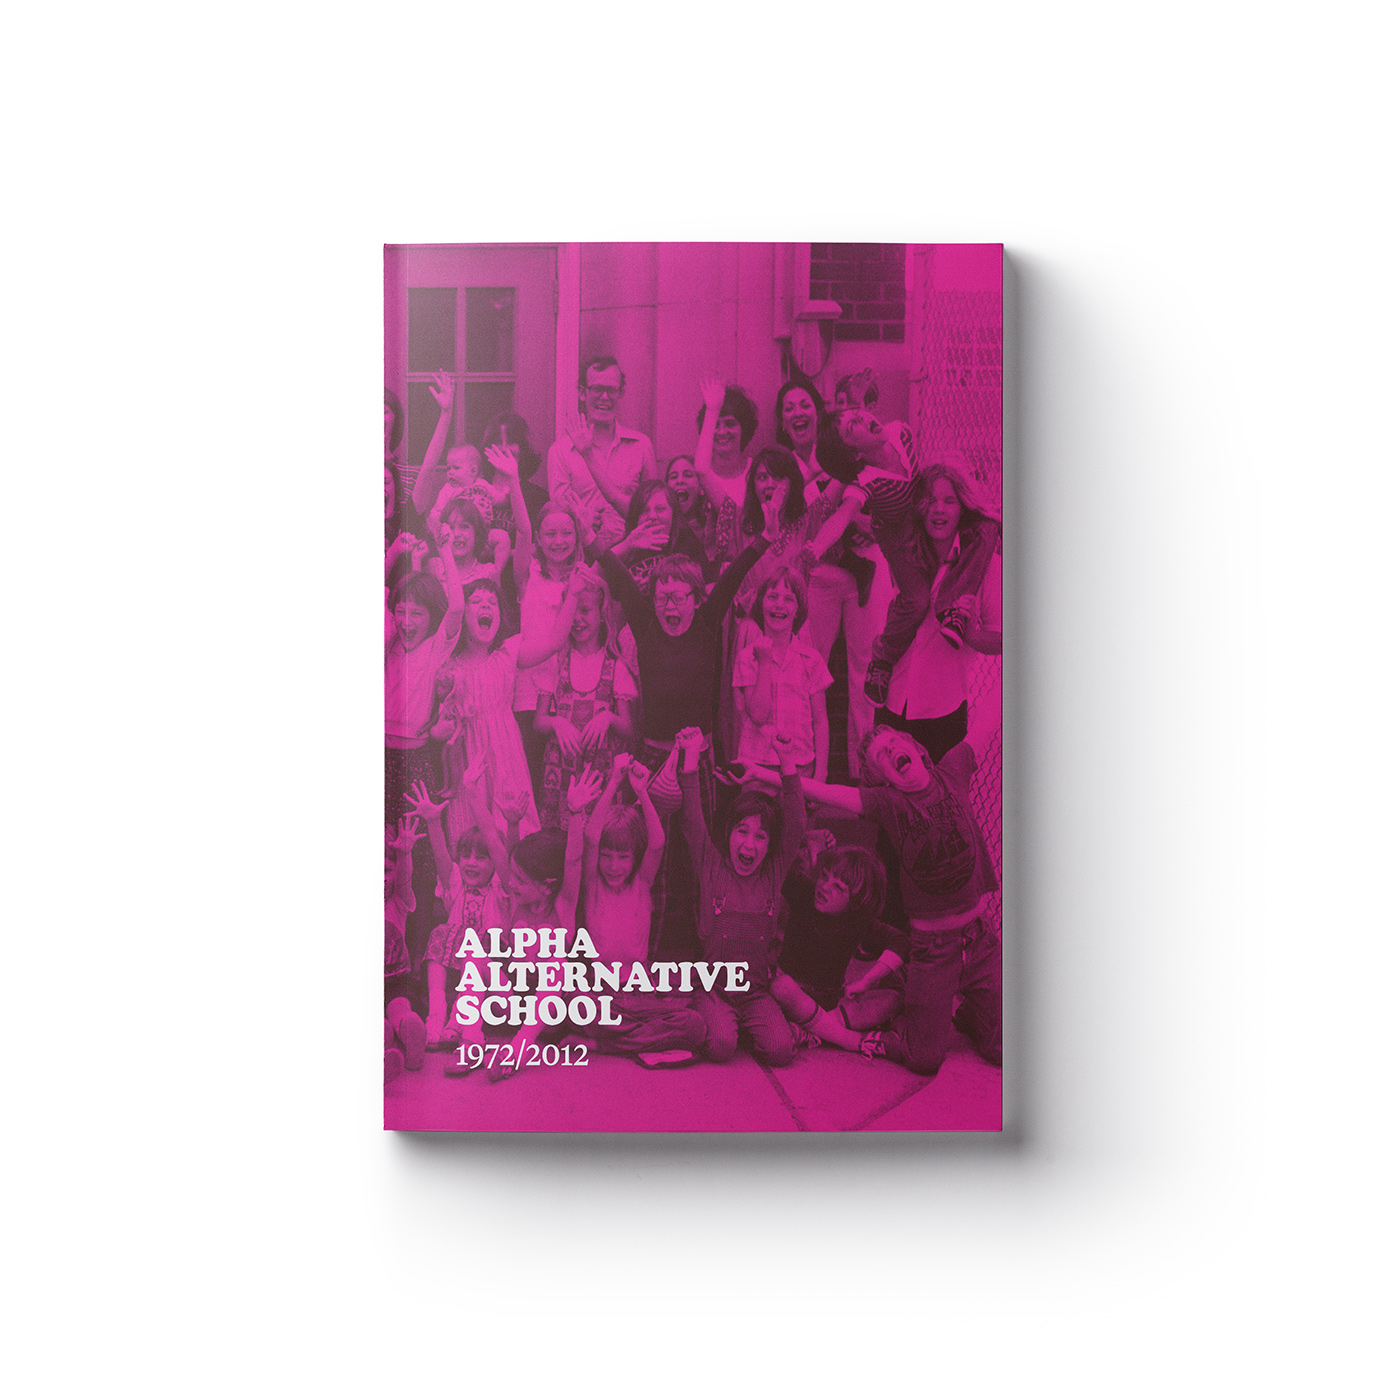 Book cover for Alpha Alternative School 1972/2012